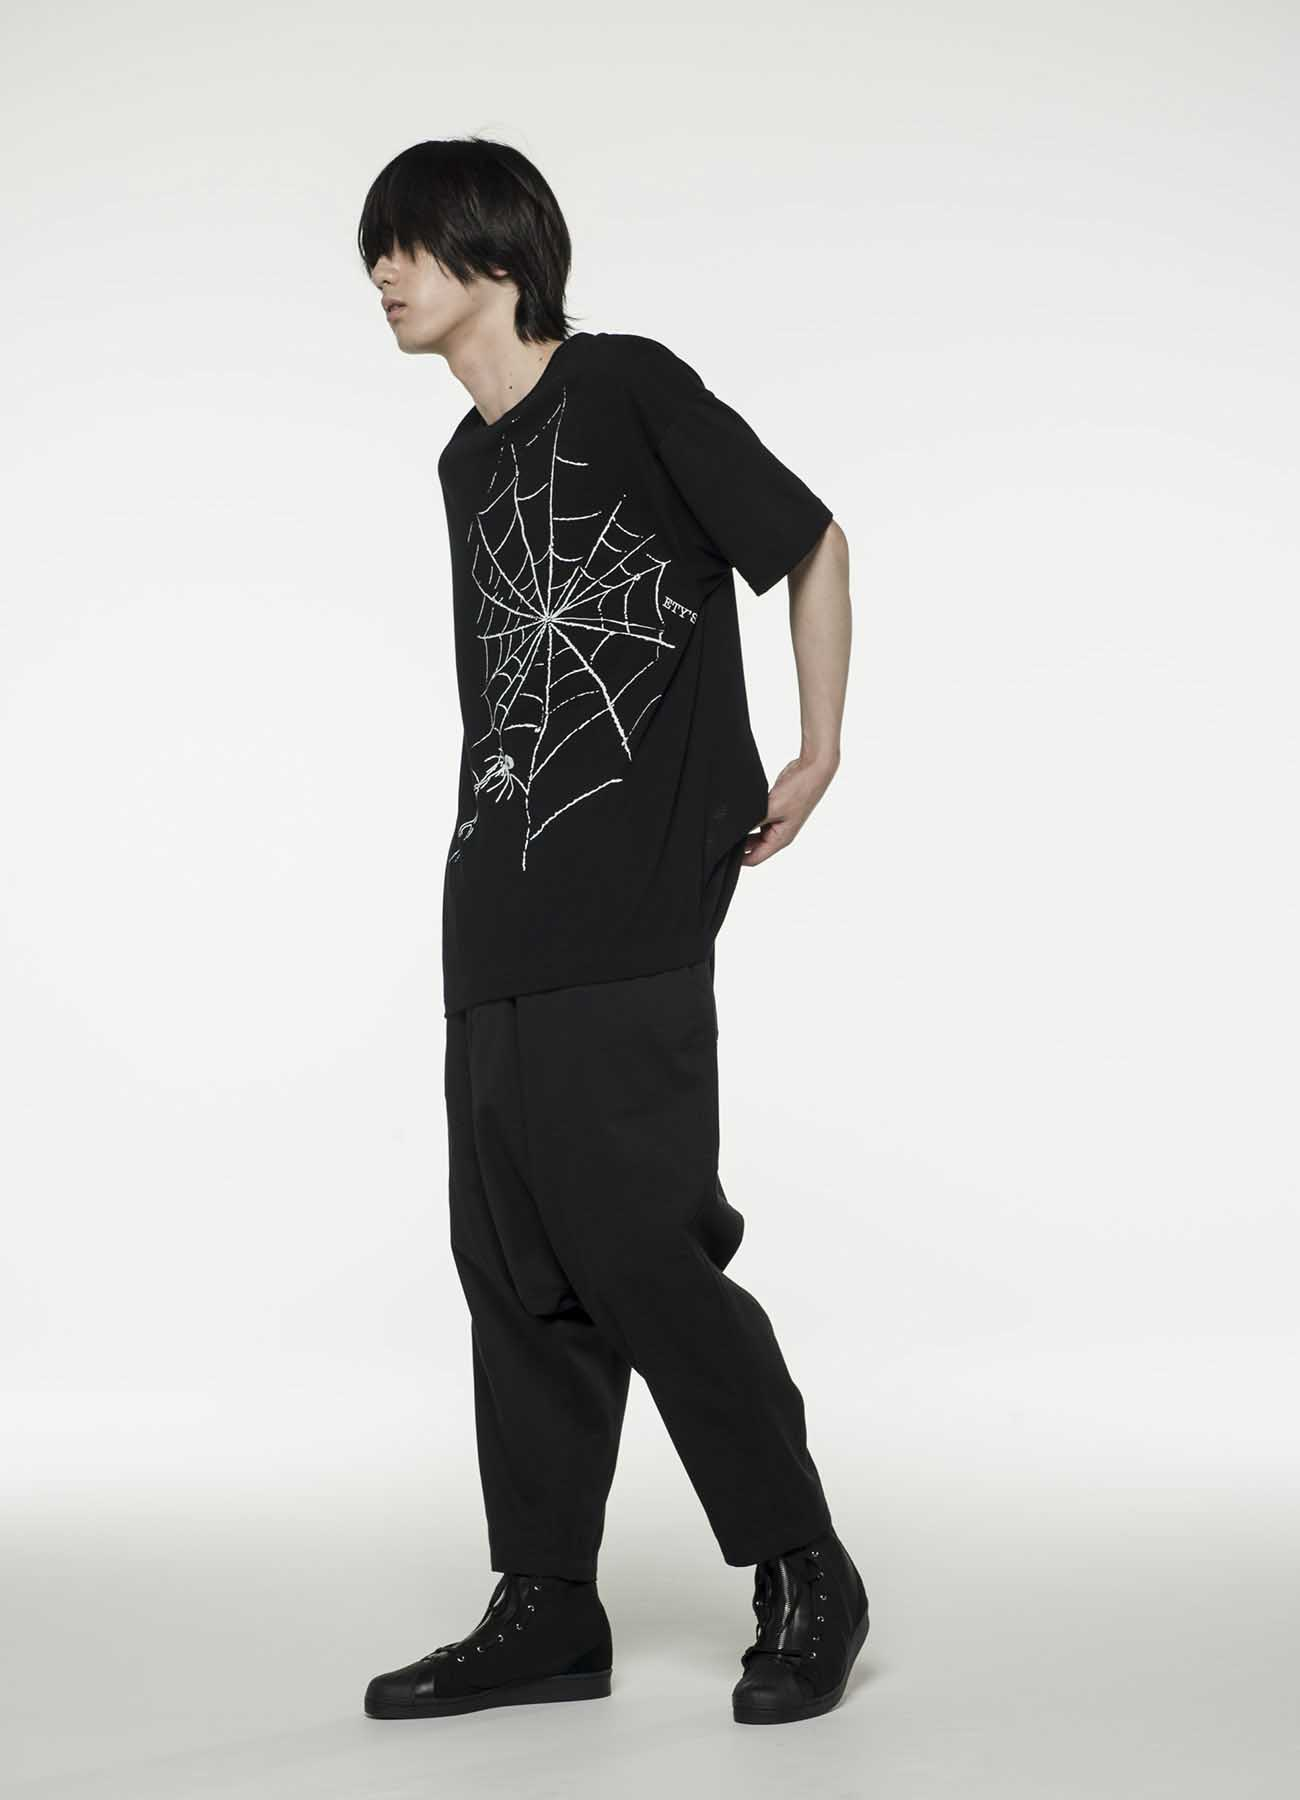 20/CottonJersey The Spiderweb T-shirt